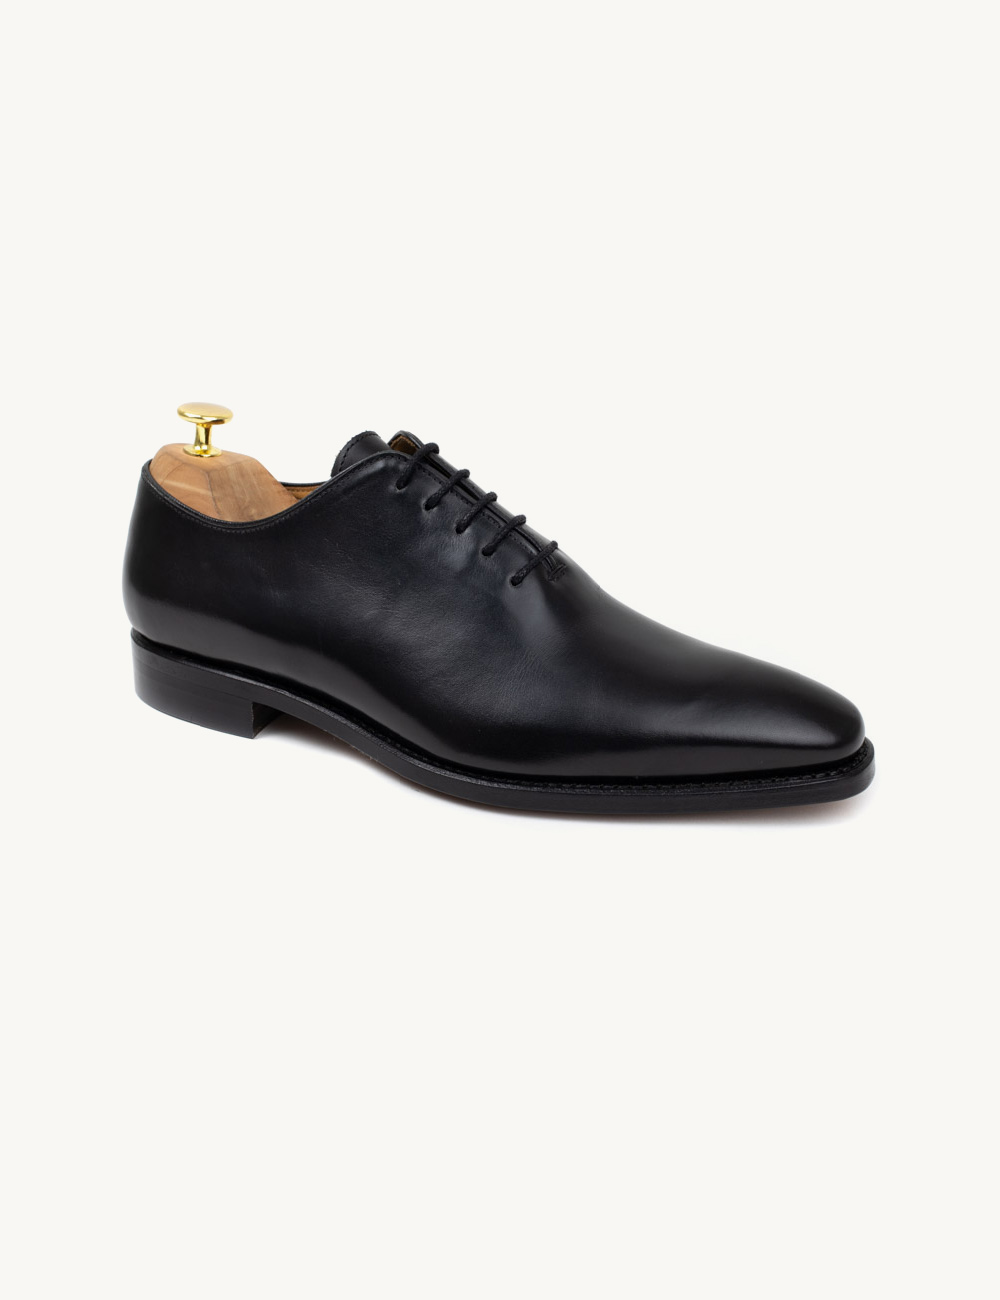 Sapatos Goodyear welted